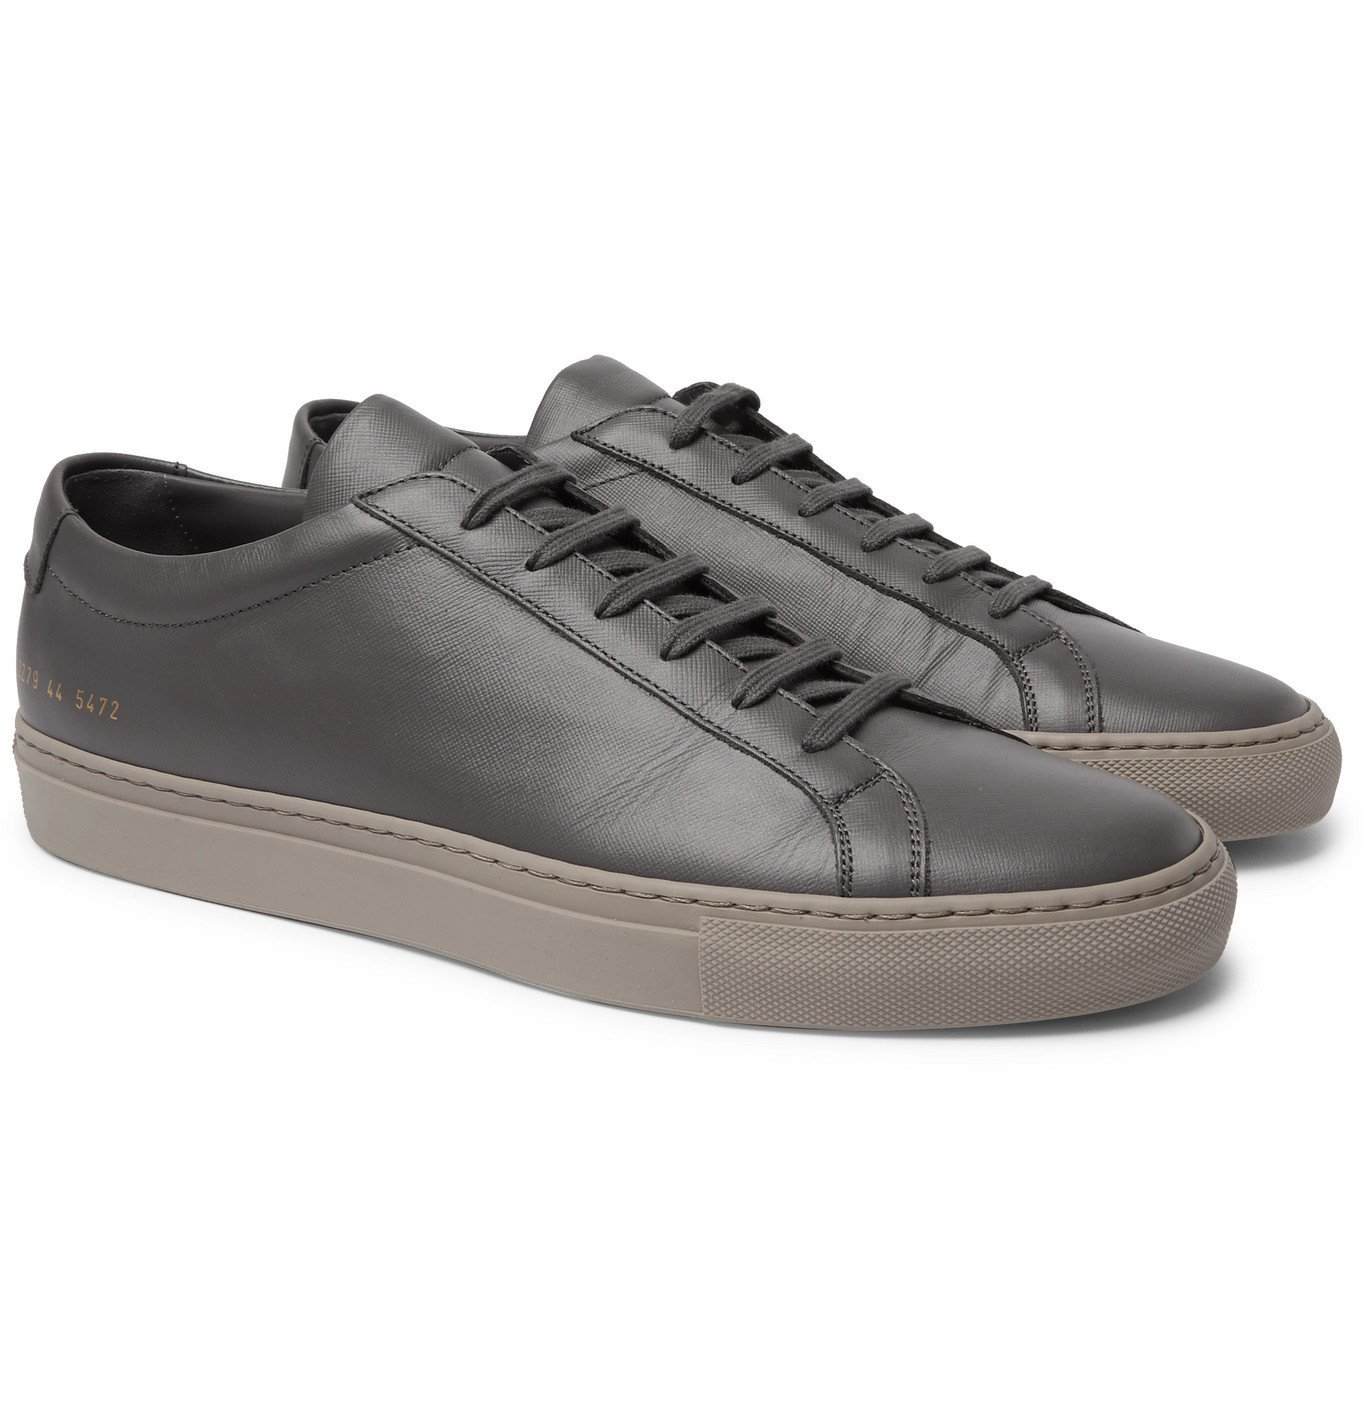 Photo: Common Projects - Original Achilles Saffiano Leather Sneakers - Gray